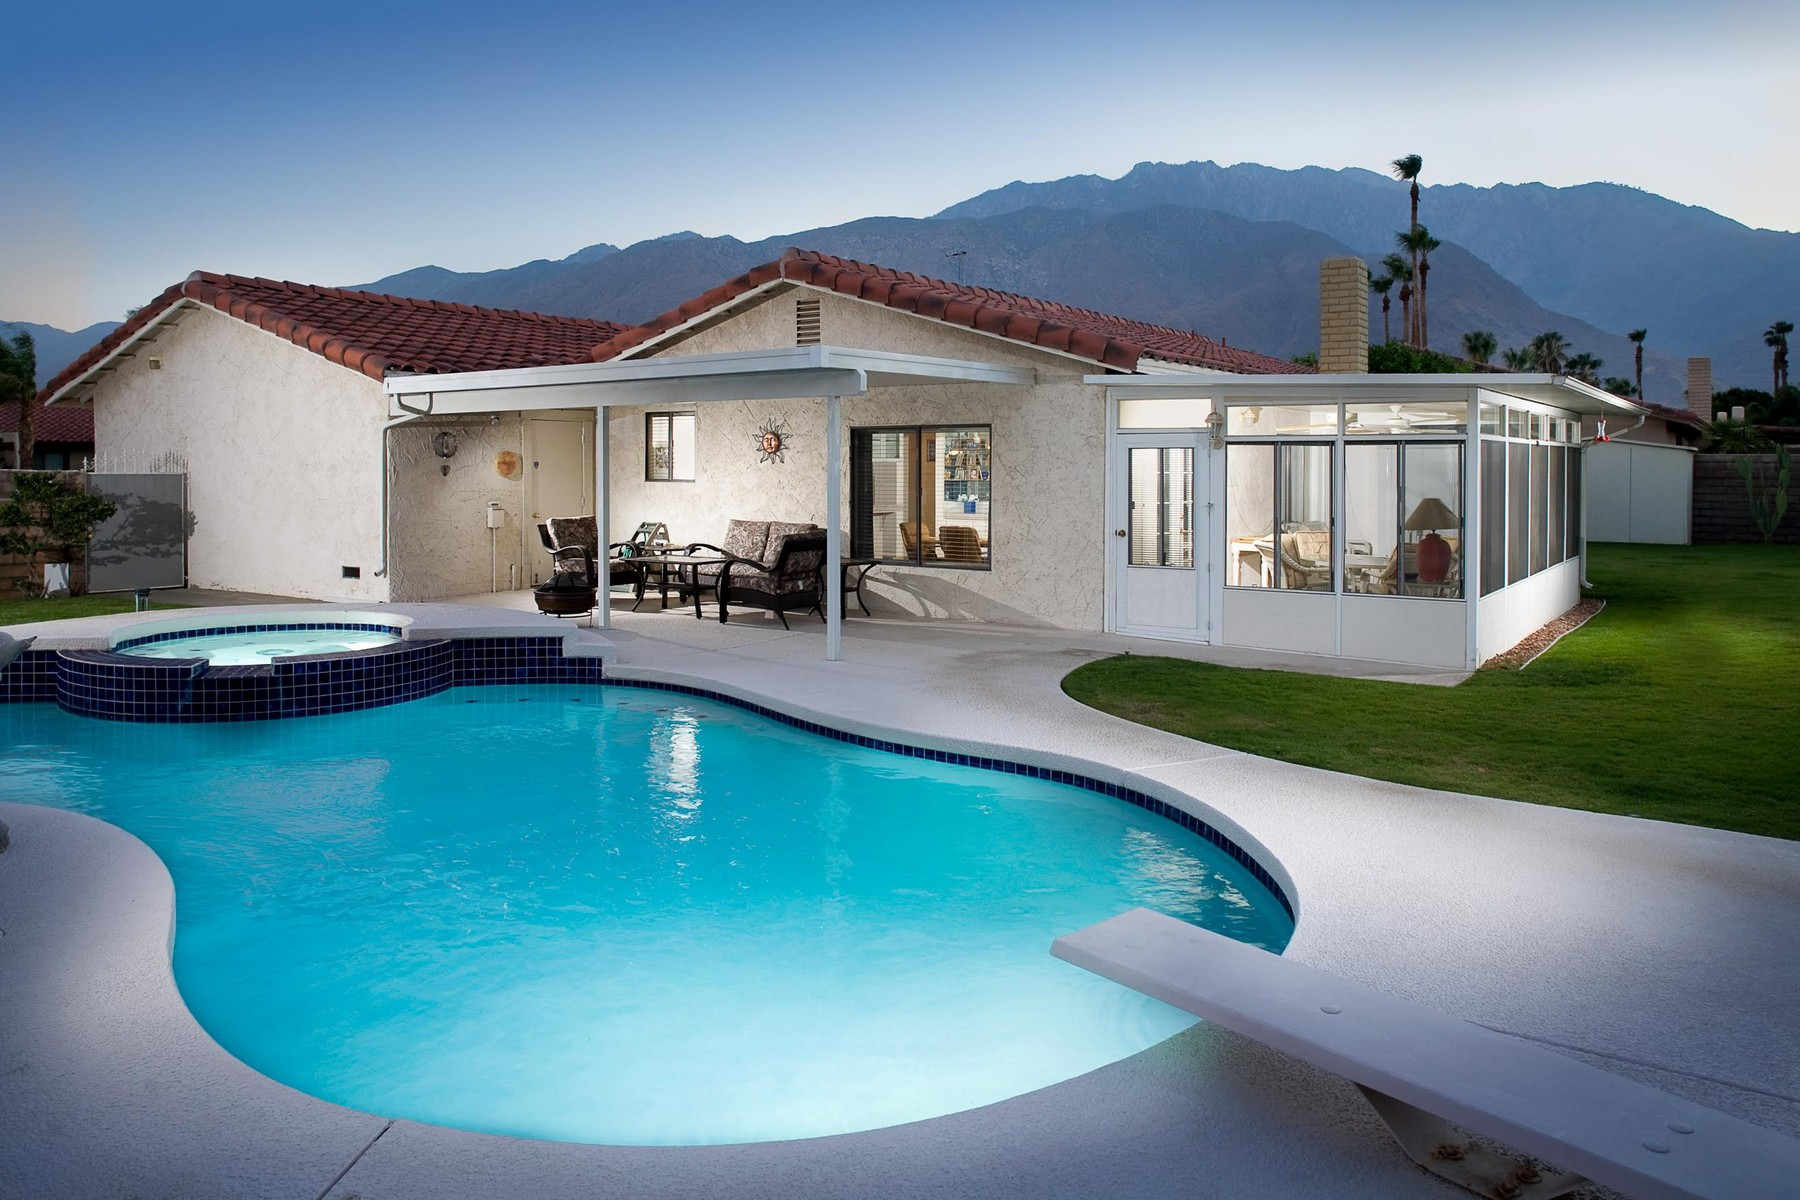 Villa per Vendita alle ore 1330 East Rosarito Way Palm Springs, California, 92262 Stati Uniti